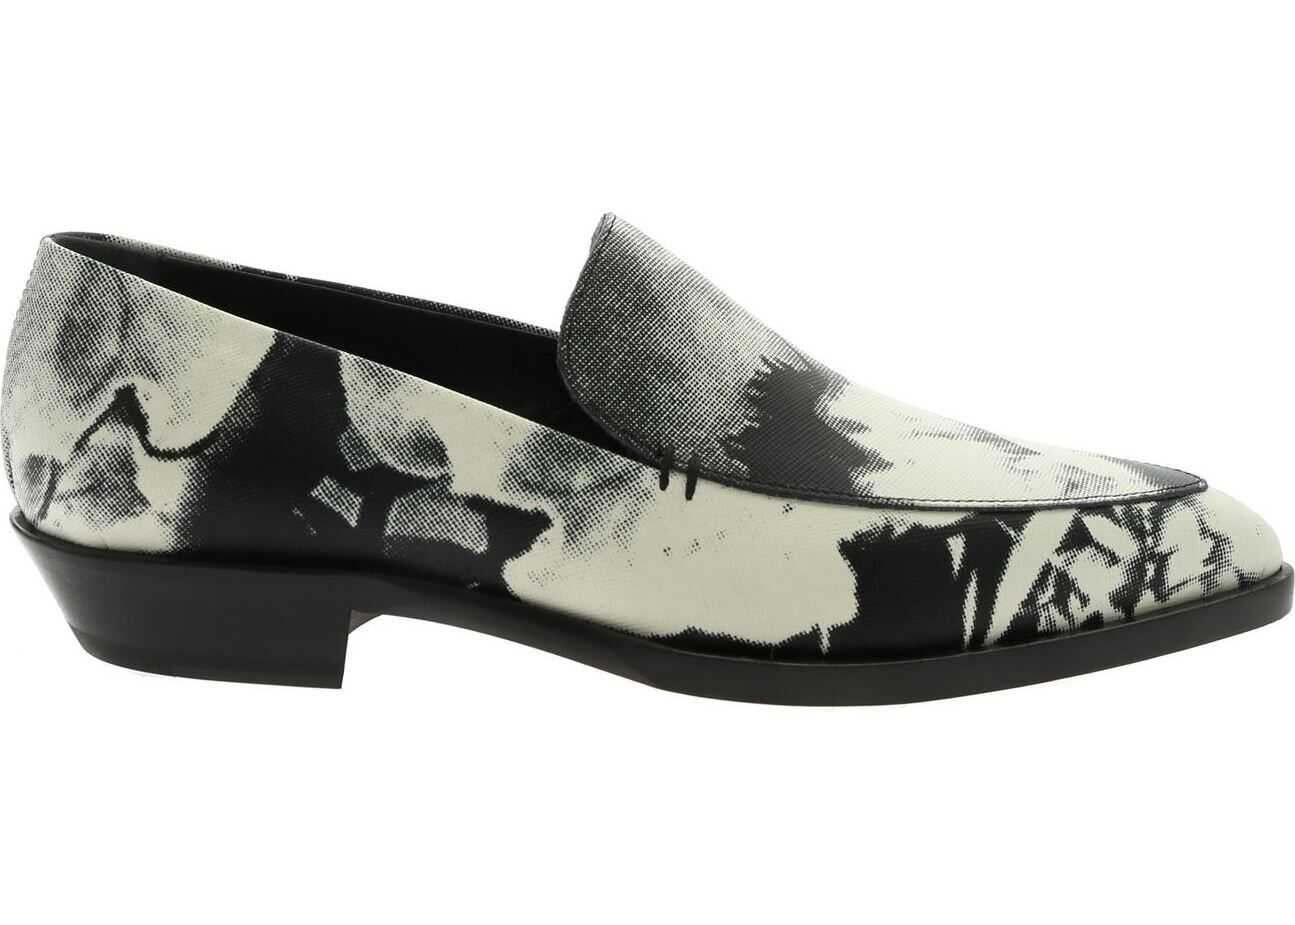 Paul Smith Janell Shoes In Black And White Black